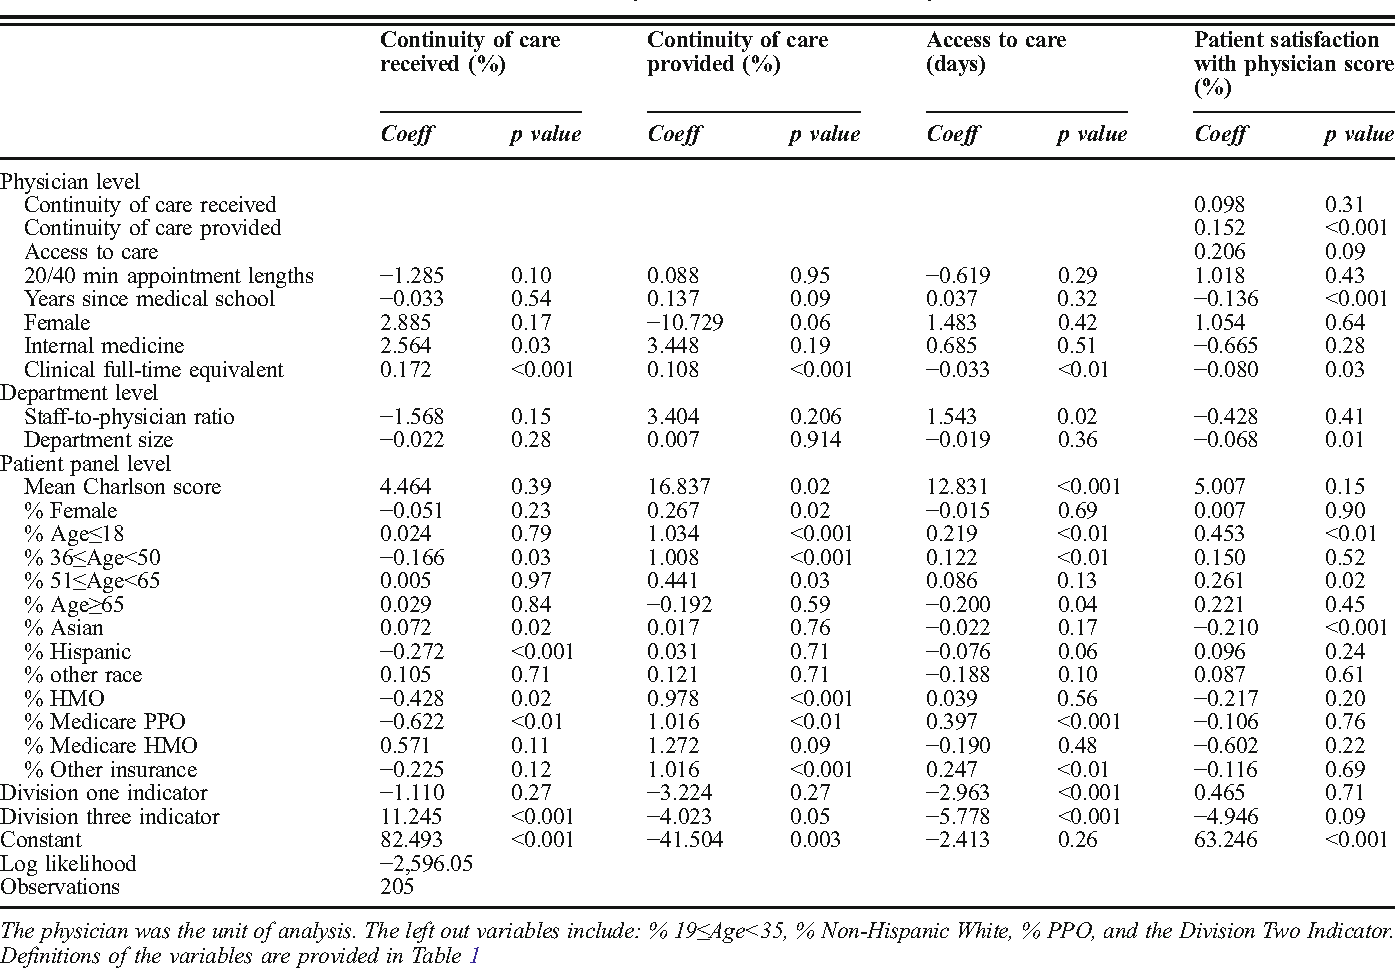 Table 2 Structural Equation Modeling Results of the Direct Association of a Physician's Clinical Full-Time Equivalent with Continuity of Care, Access to Care, and the Press Ganey Patient Satisfaction with Physician Score, 2010